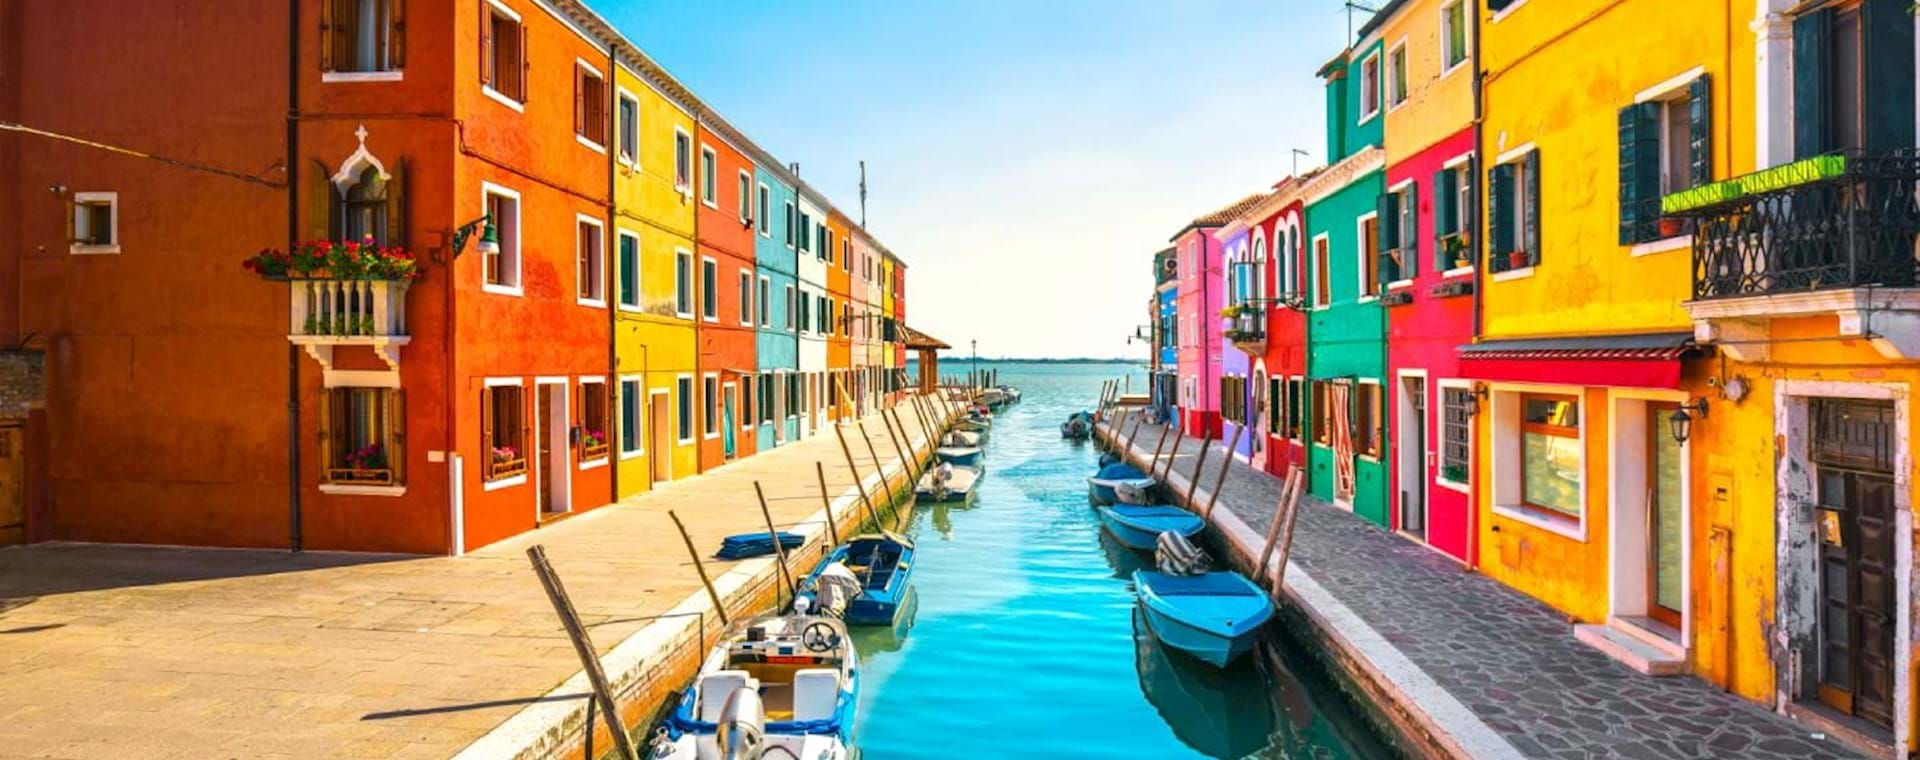 VIP Venetian Islands: Murano, Burano & Torcello by Private Water Taxi